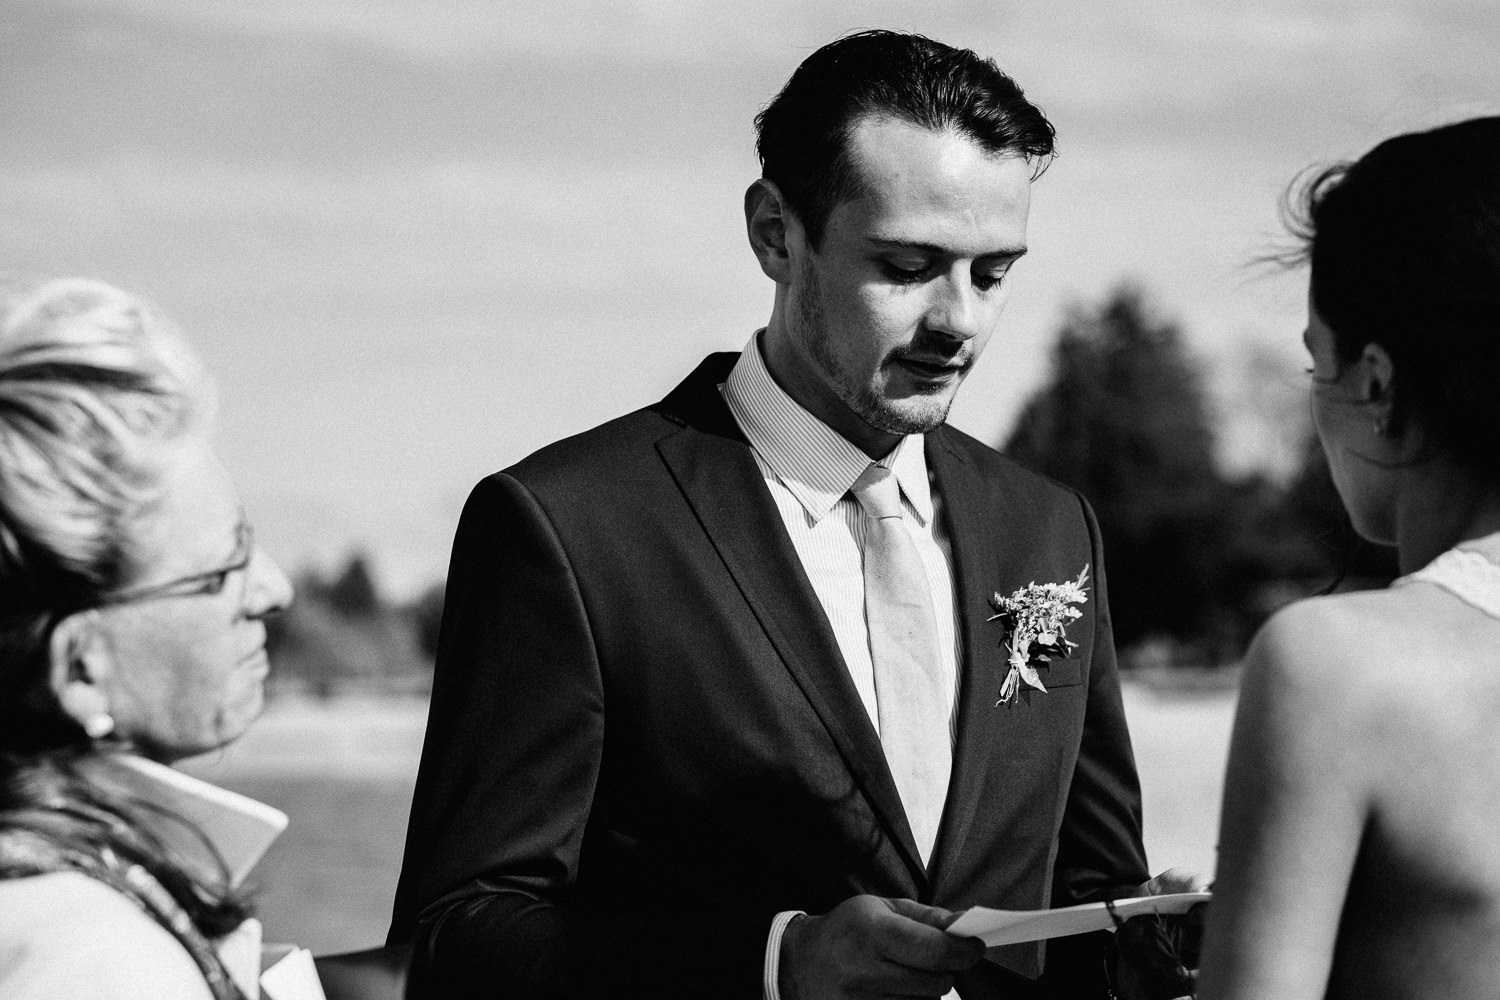 the groom reading his vows